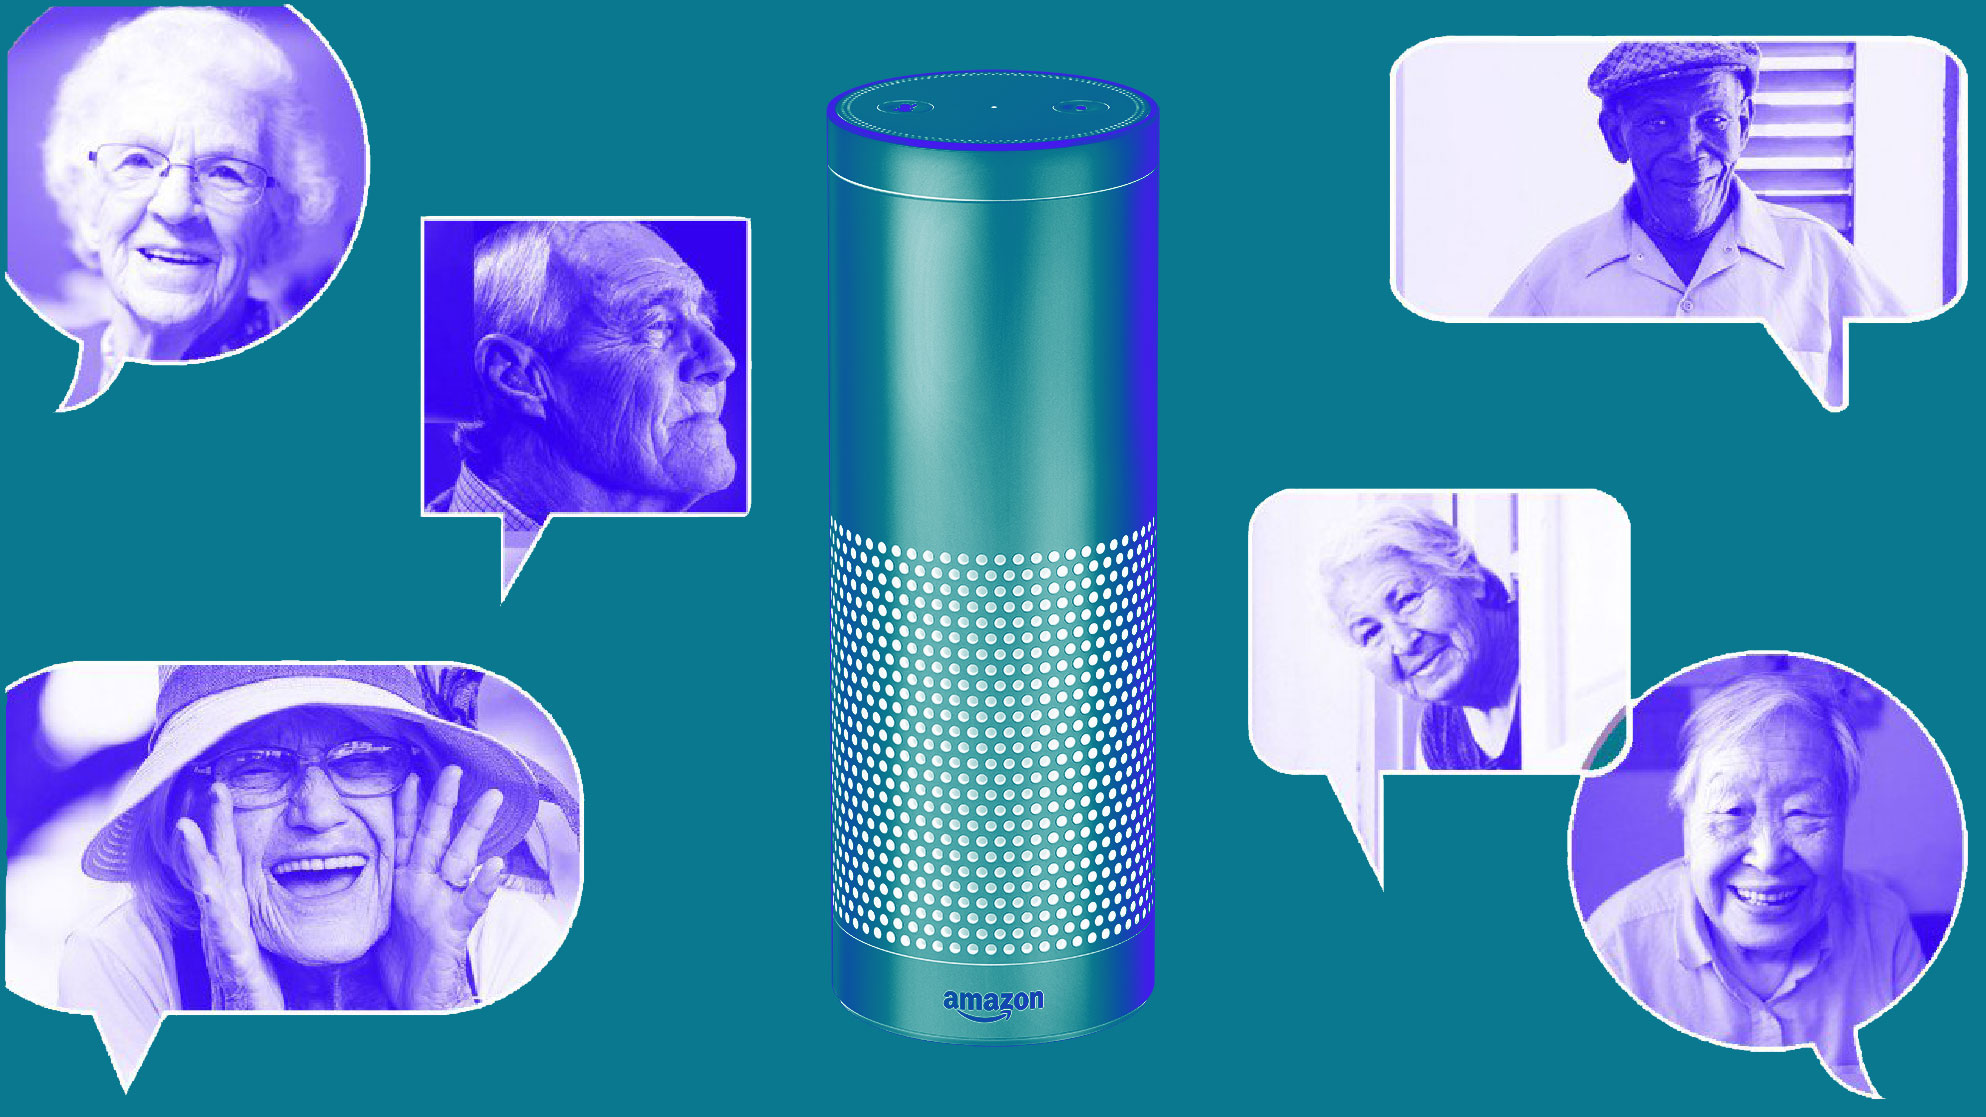 Alexa will be your best friend when you're older